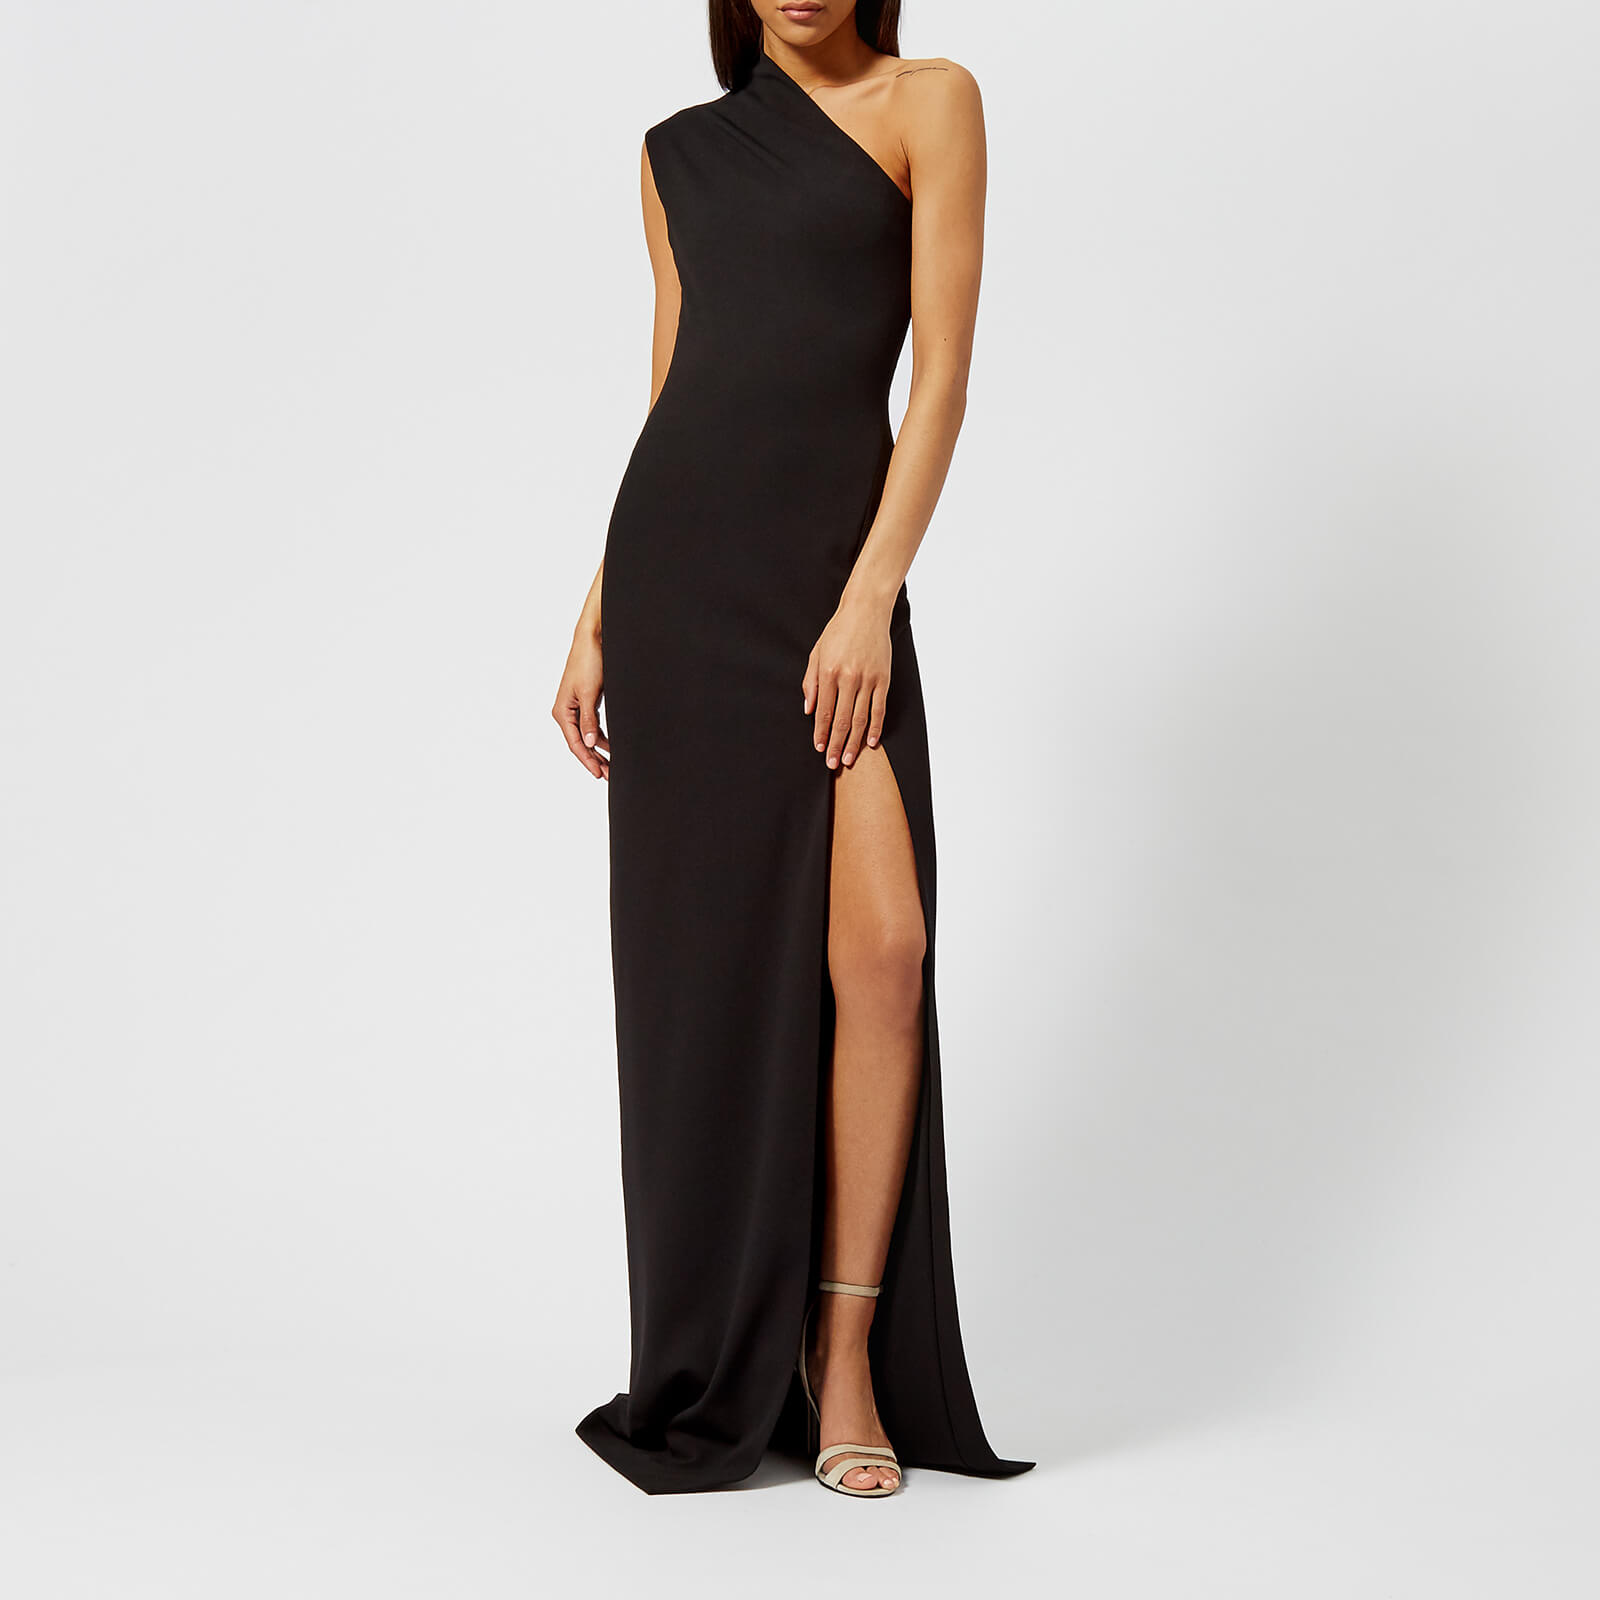 1cab87cf9a Solace London Women s Averie Maxi Dress - Black - Free UK Delivery over £50